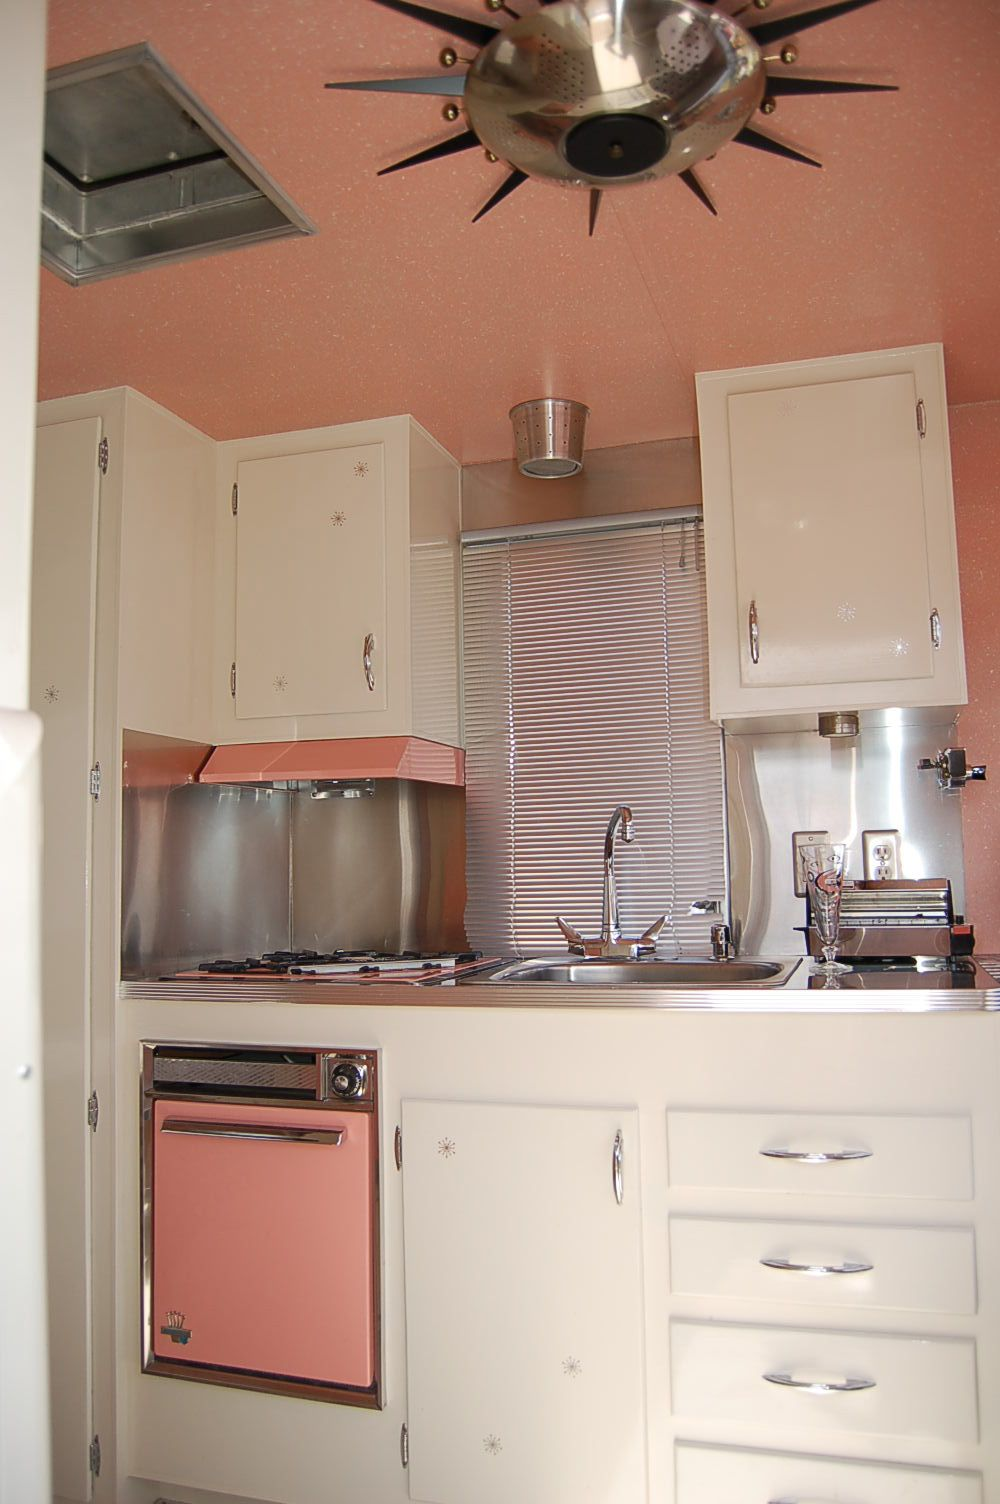 Light Pink Kitchen Vintage Camper Teardrop Vintage Campers Pinterest Ceiling